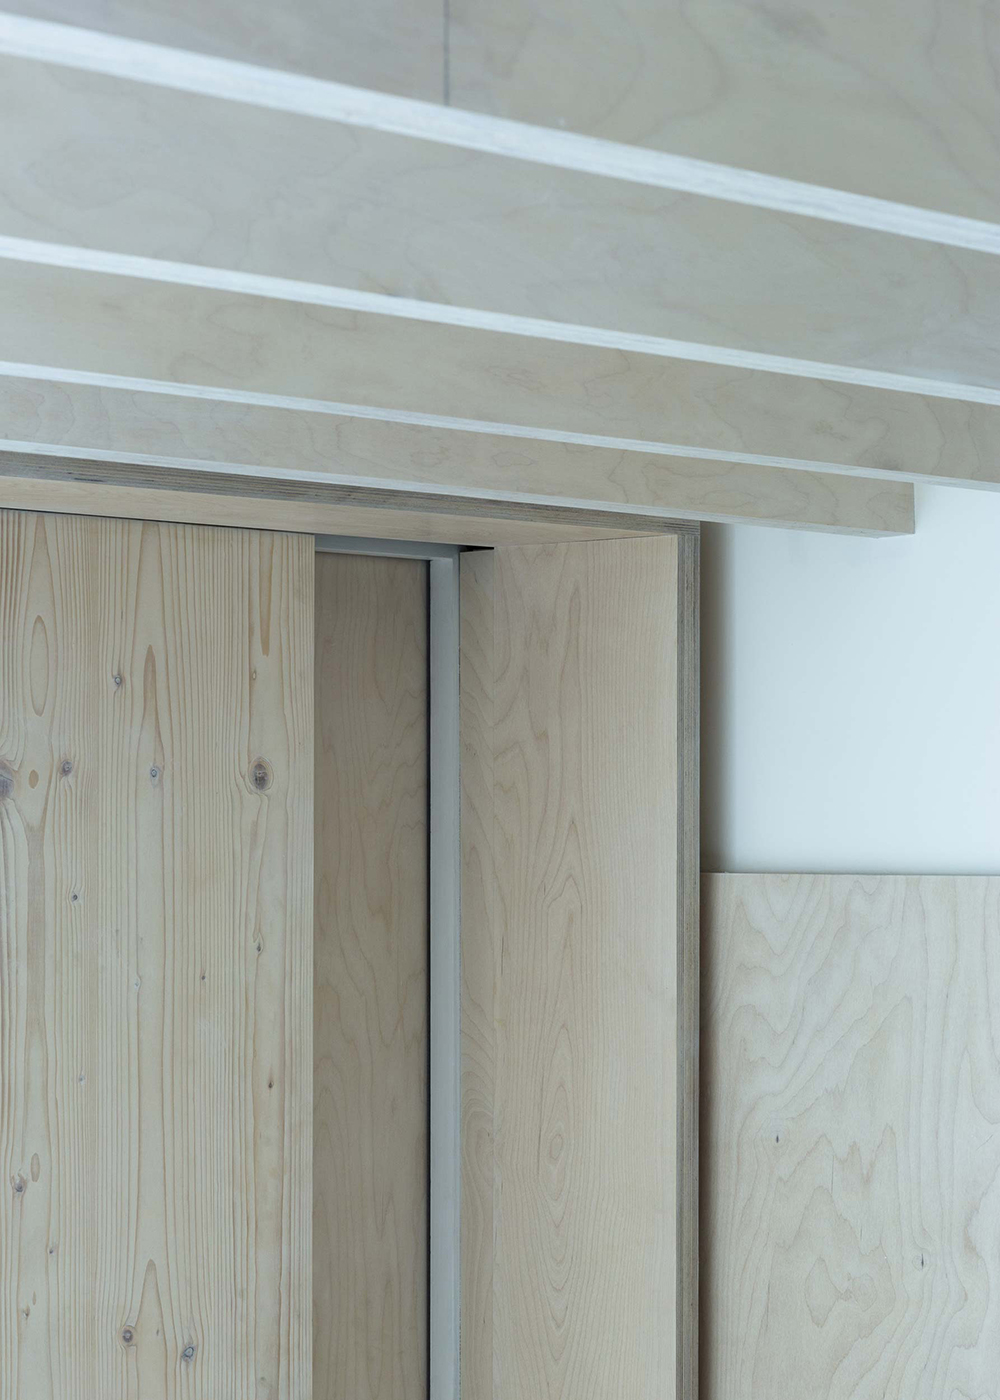 PH2_5_Plywood_Shutter_Detai